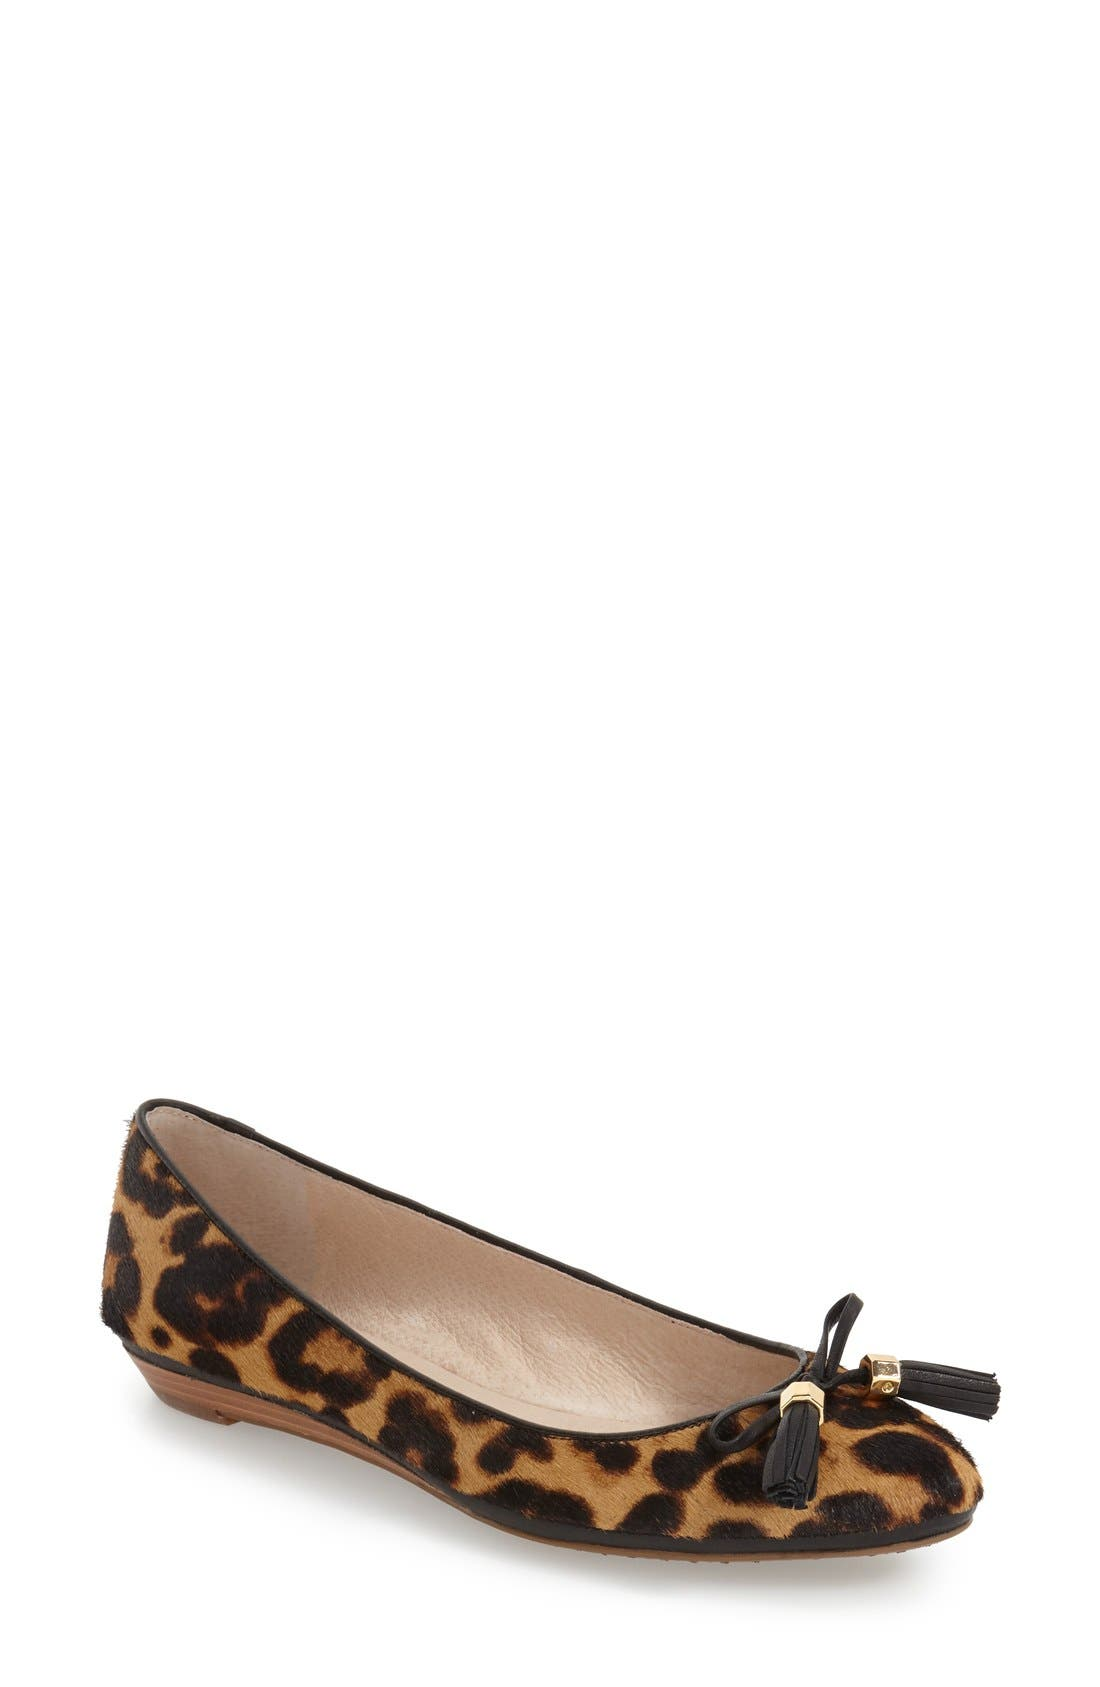 Alternate Image 1 Selected - Louise et Cie 'Aradella' Genuine Calf Hair Pointy Toe Flat (Women) (Nordstrom Exclusive)